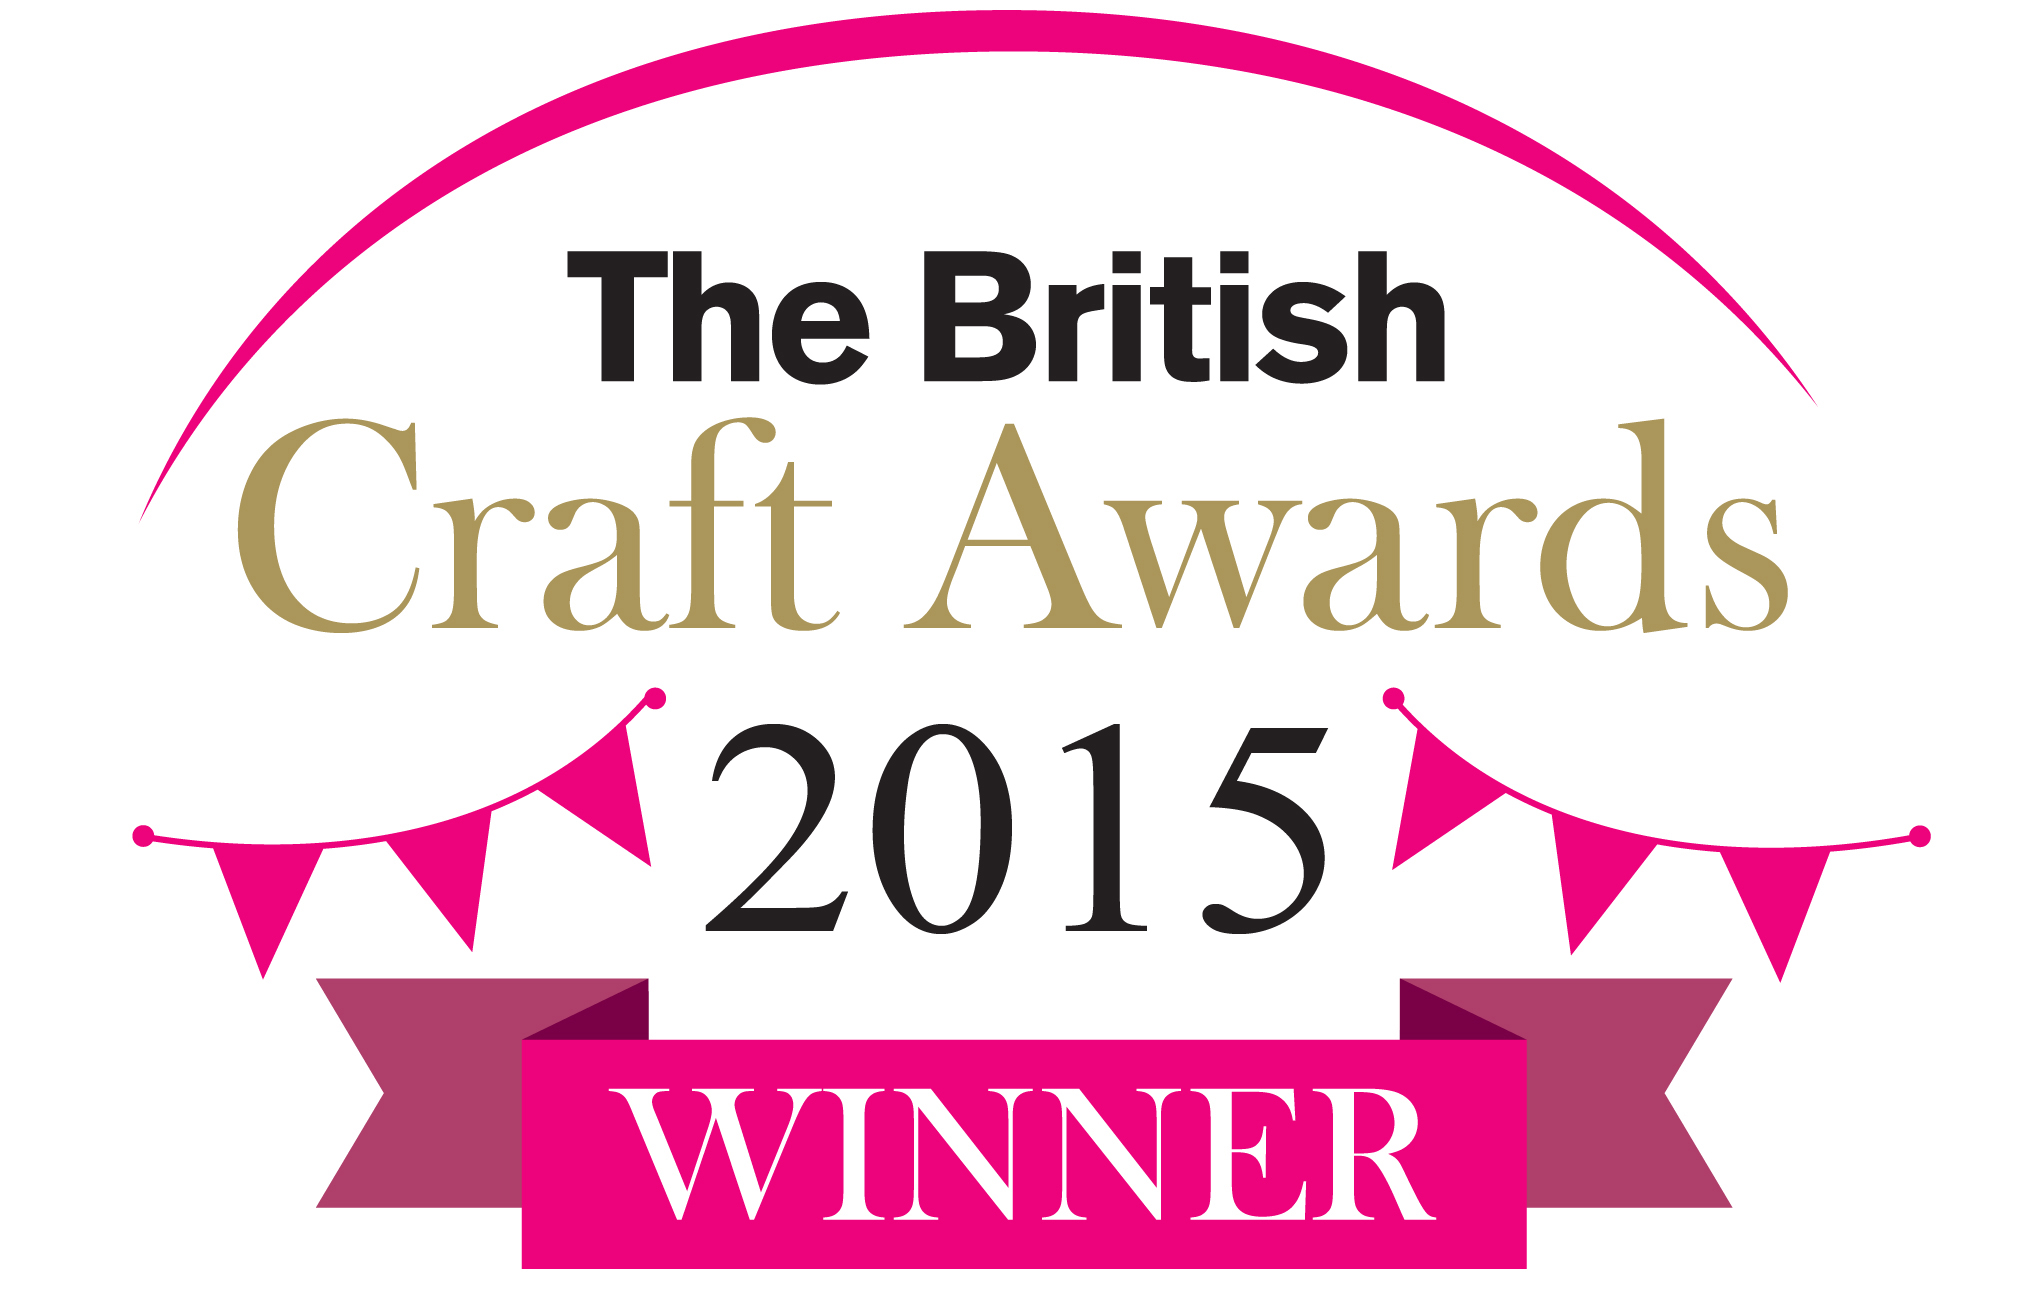 The British Craft Awards 2015